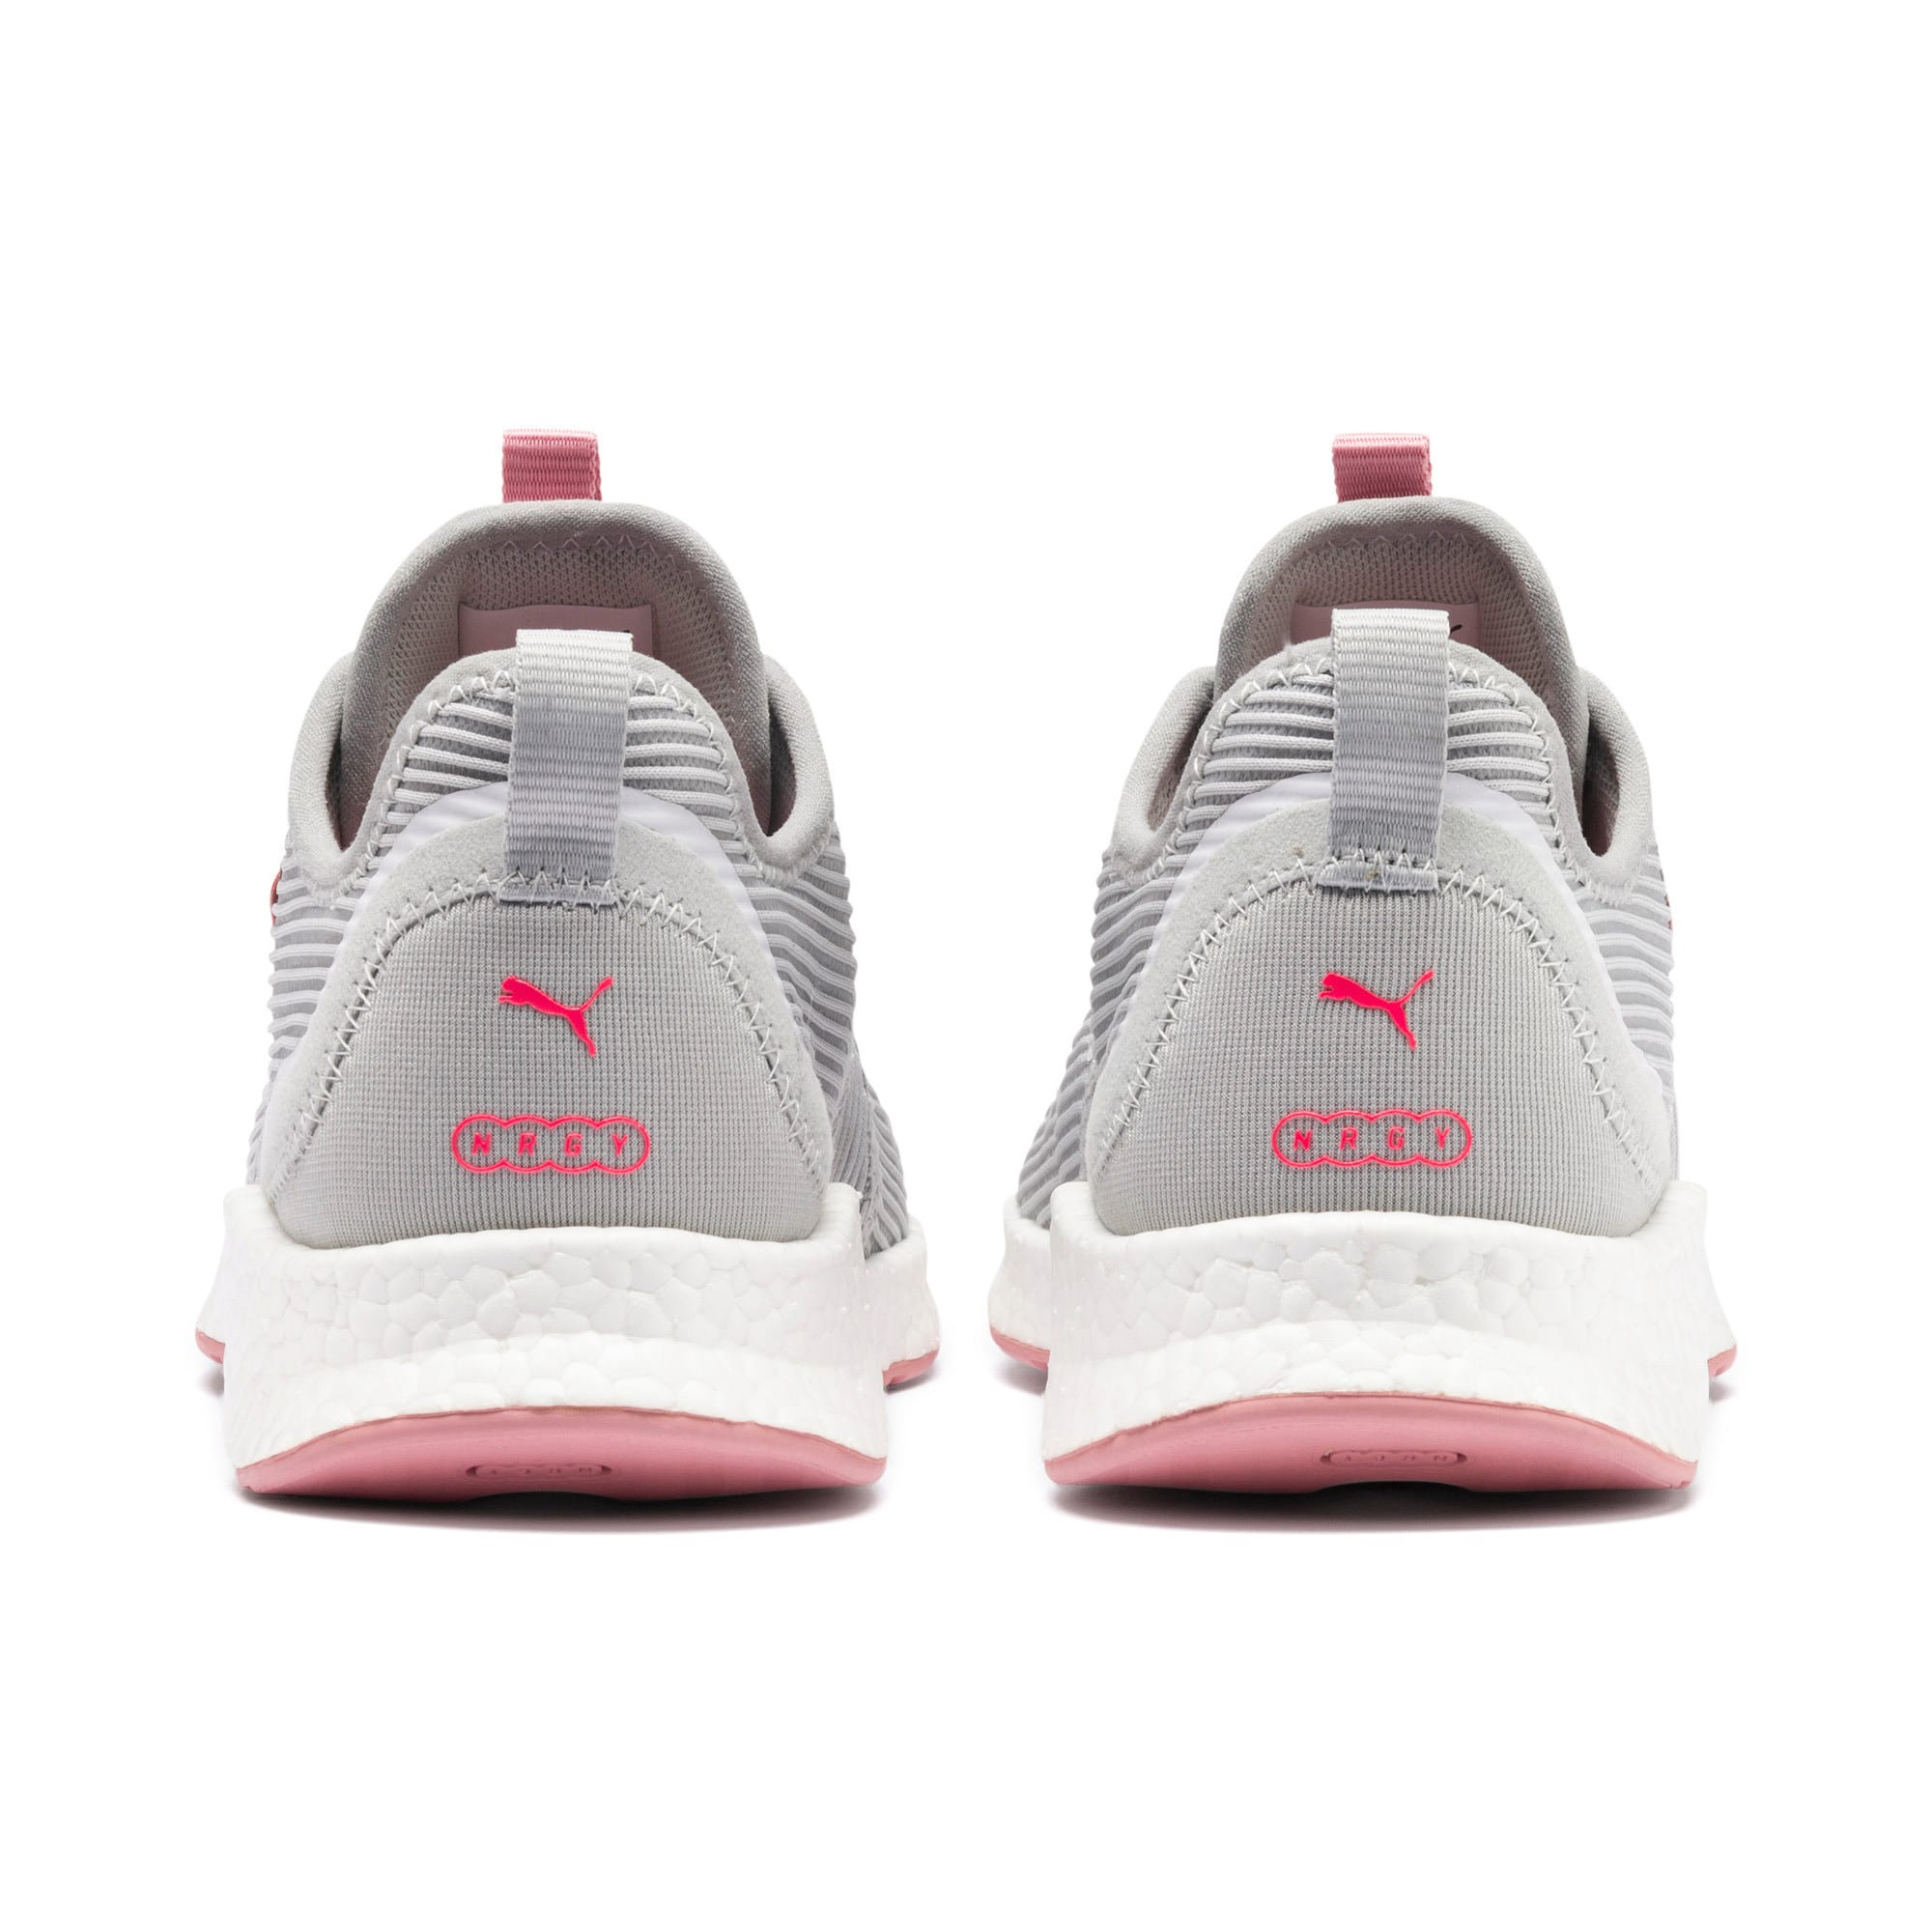 NRGY Star Femme Women's Running Shoes, Glacier Gray-Pink-White, large